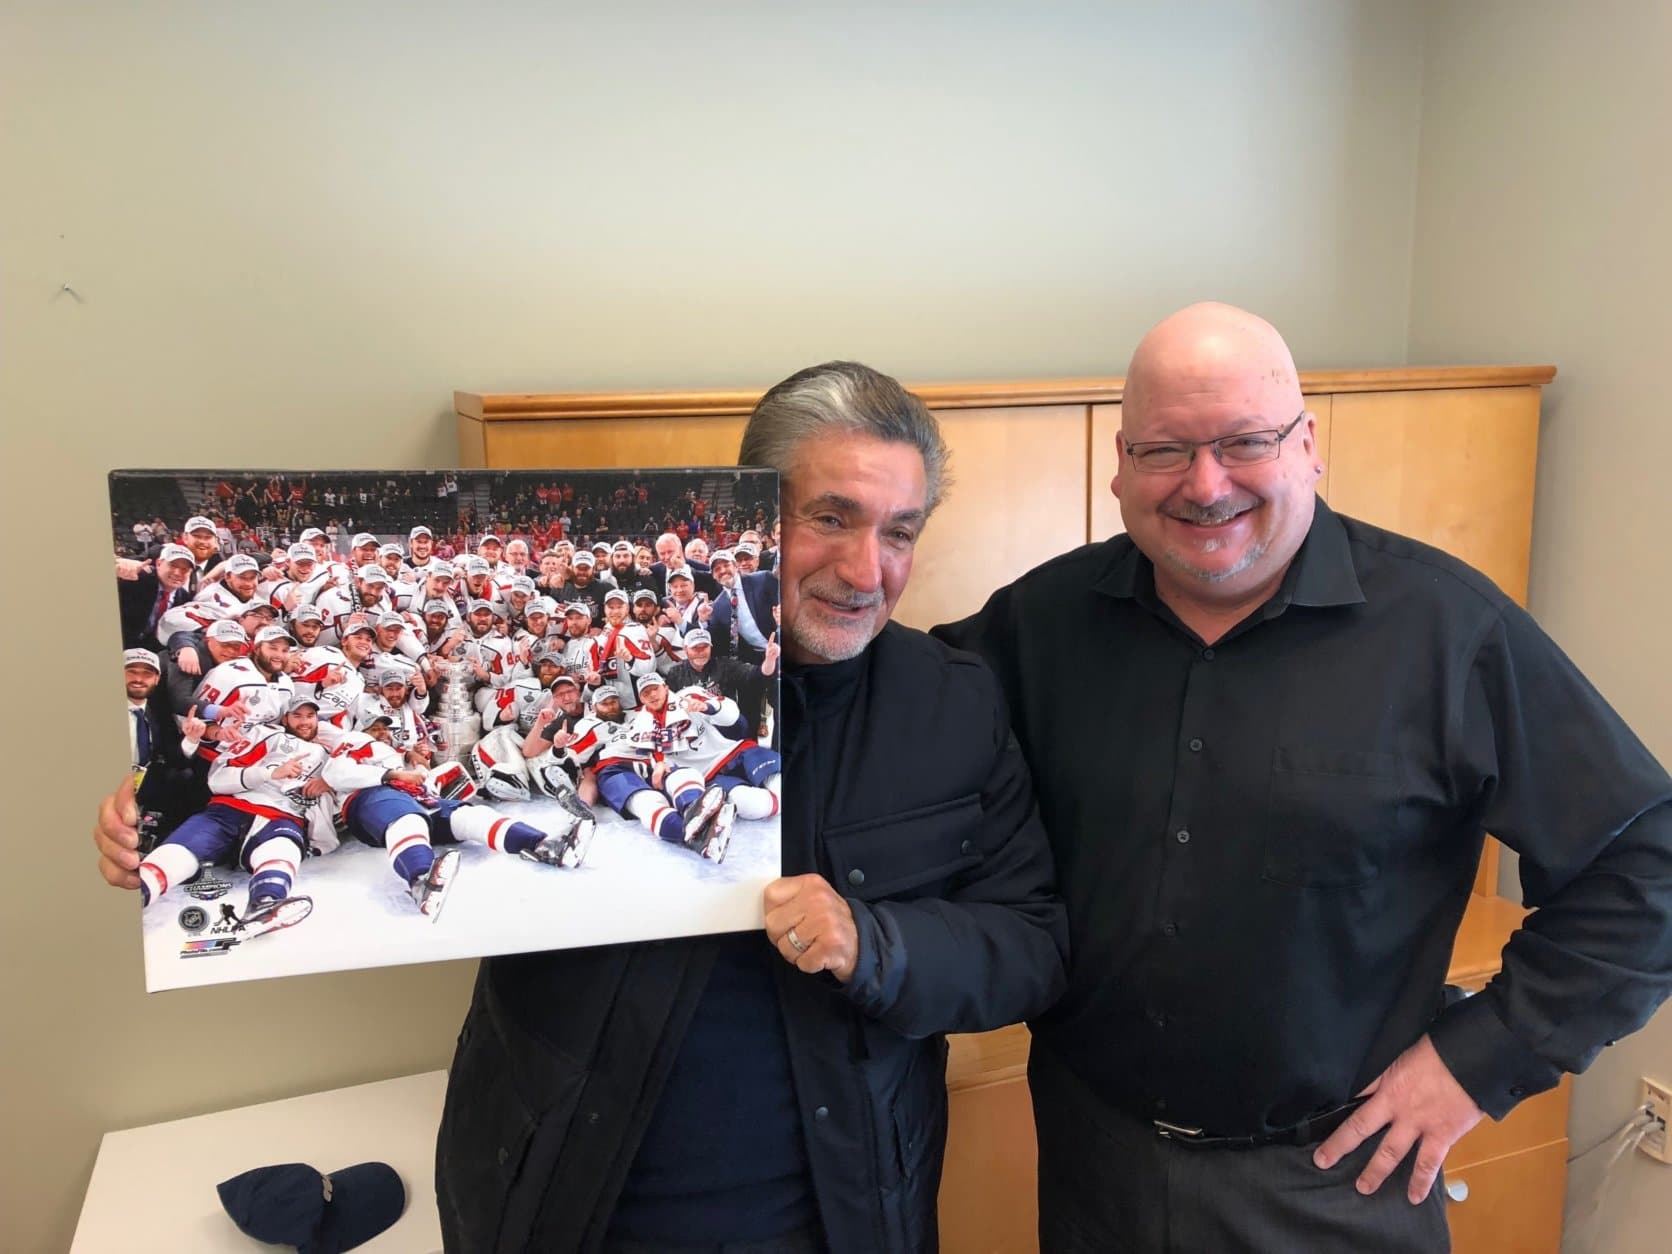 Leonsis never made it into the iconic championship photo, saying he was standing just outside the frame. So he posed with the photo, a copy of which rests in WTOP News & Program Director Mike McMearty's office. (WTOP/Julia Ziegler)